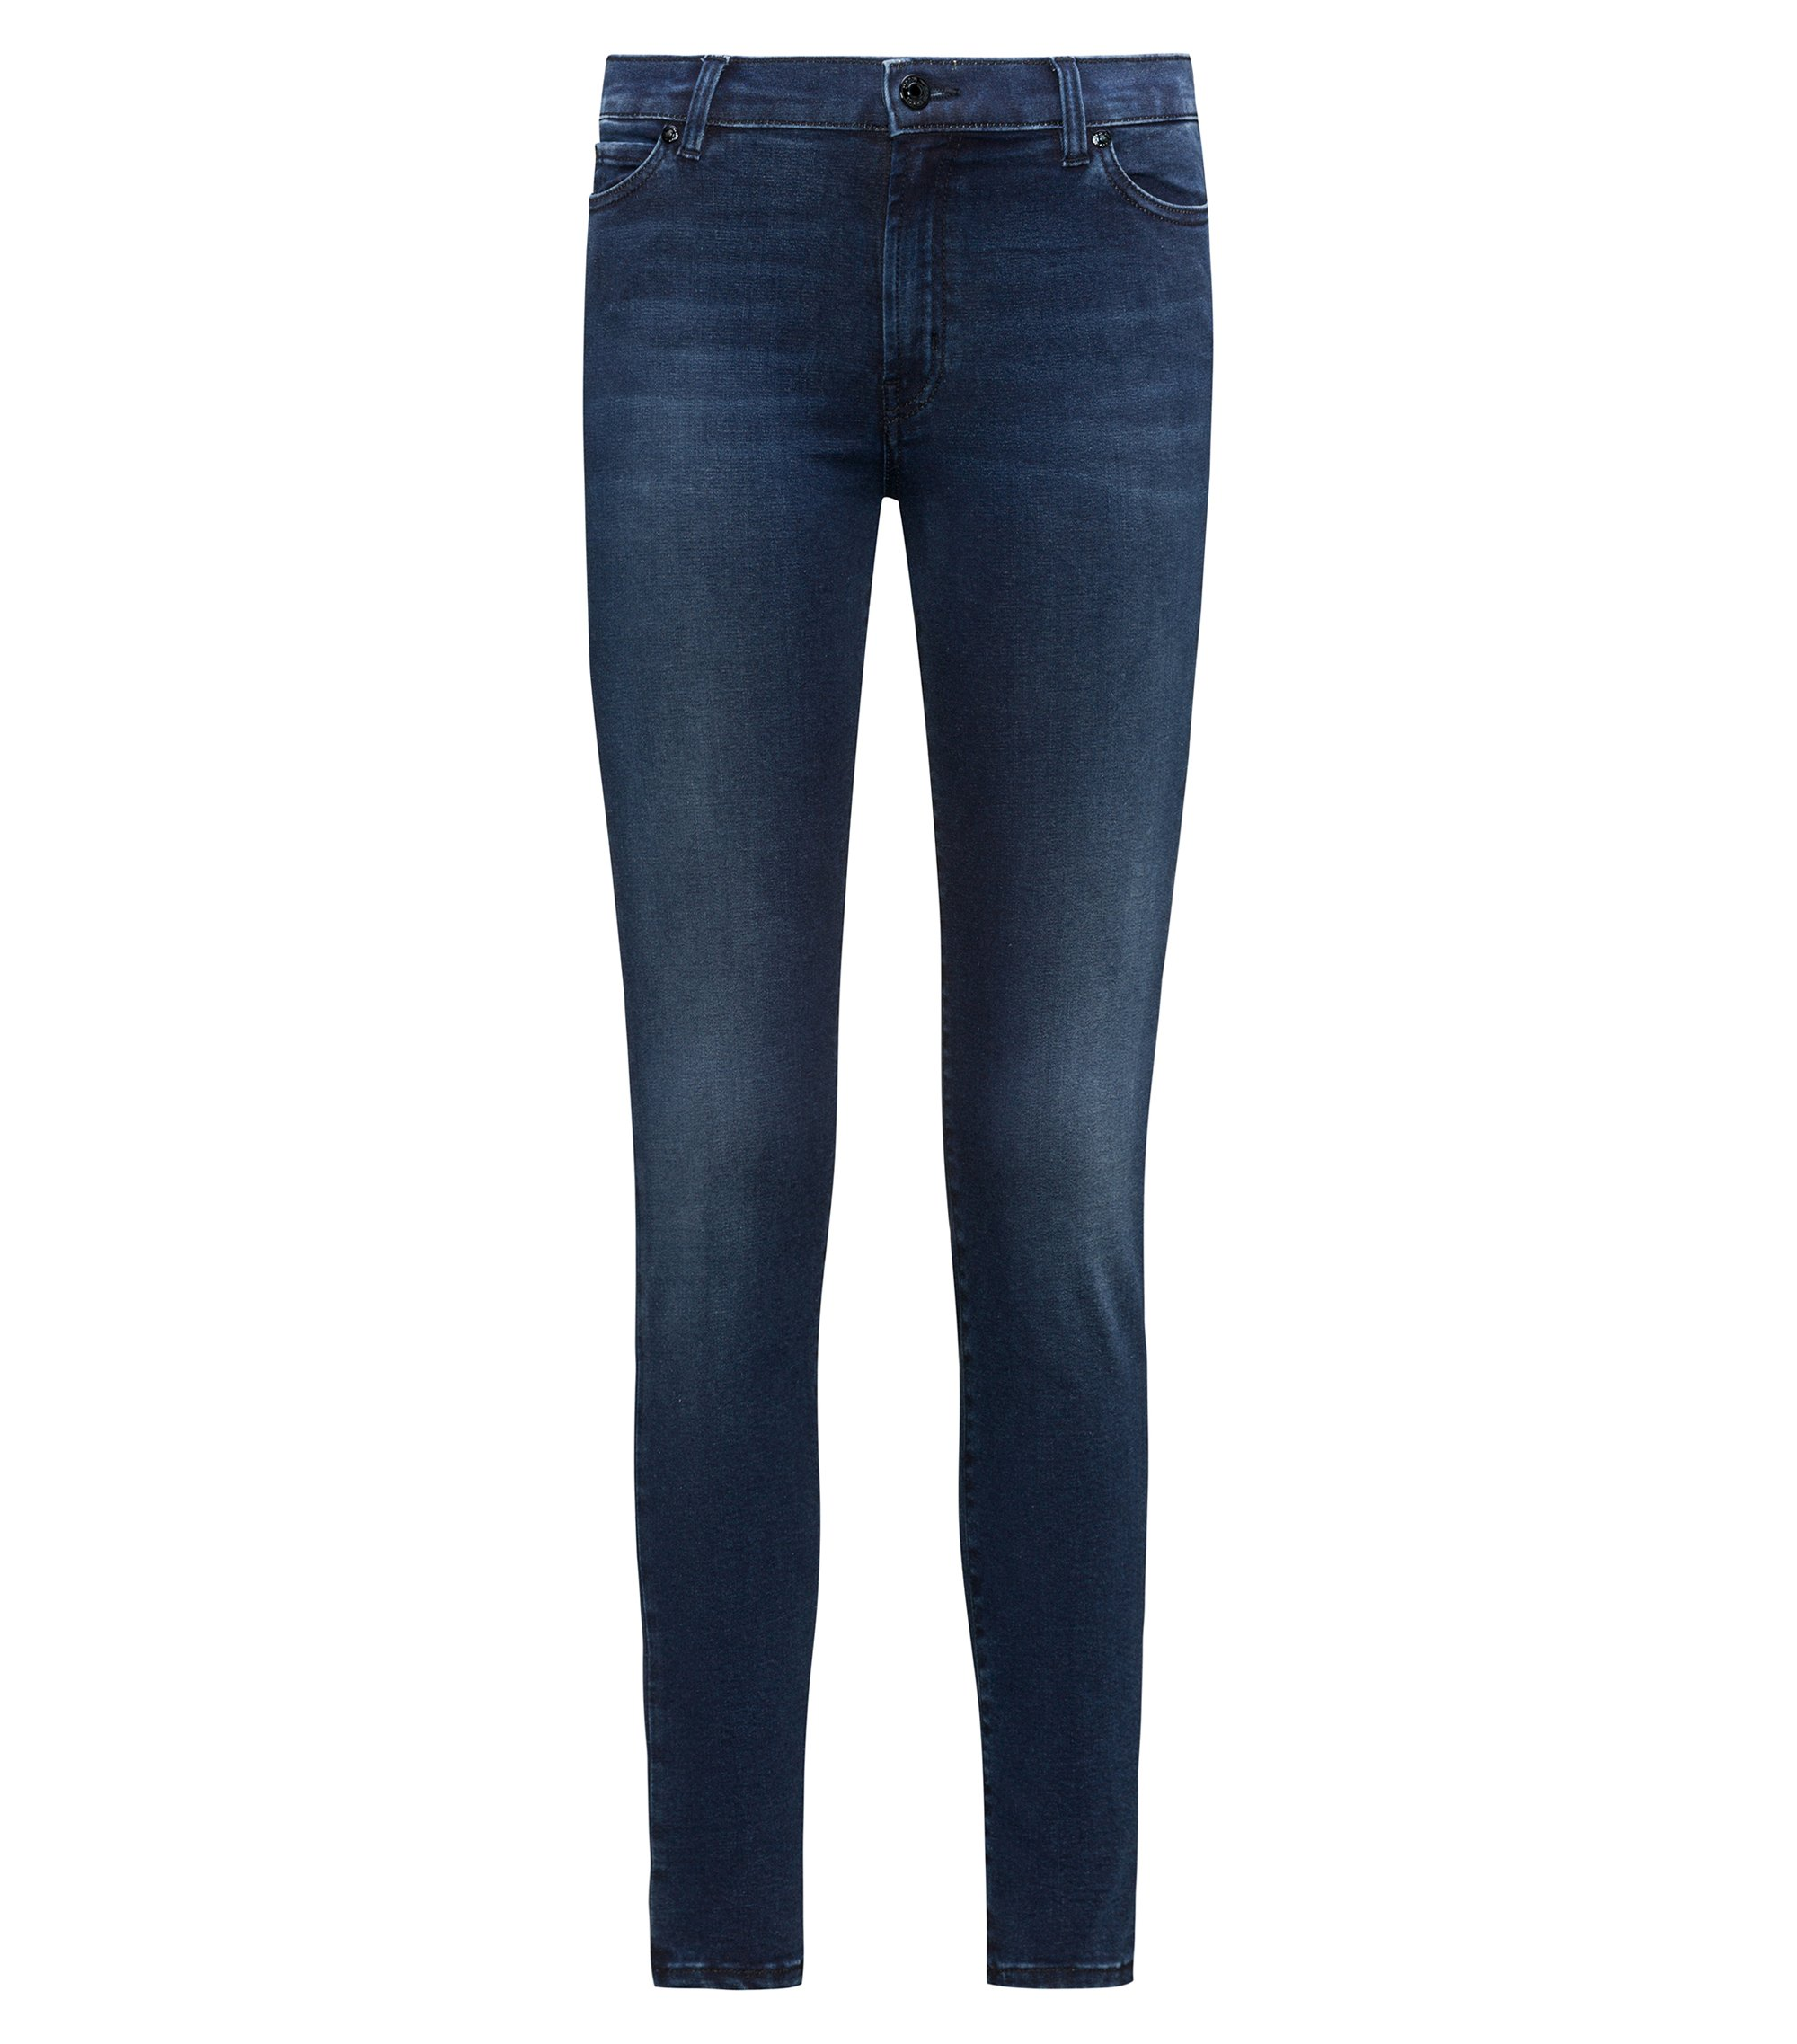 Extra Slim-Fit Jeans aus Super Stretch Denim, Dunkelblau